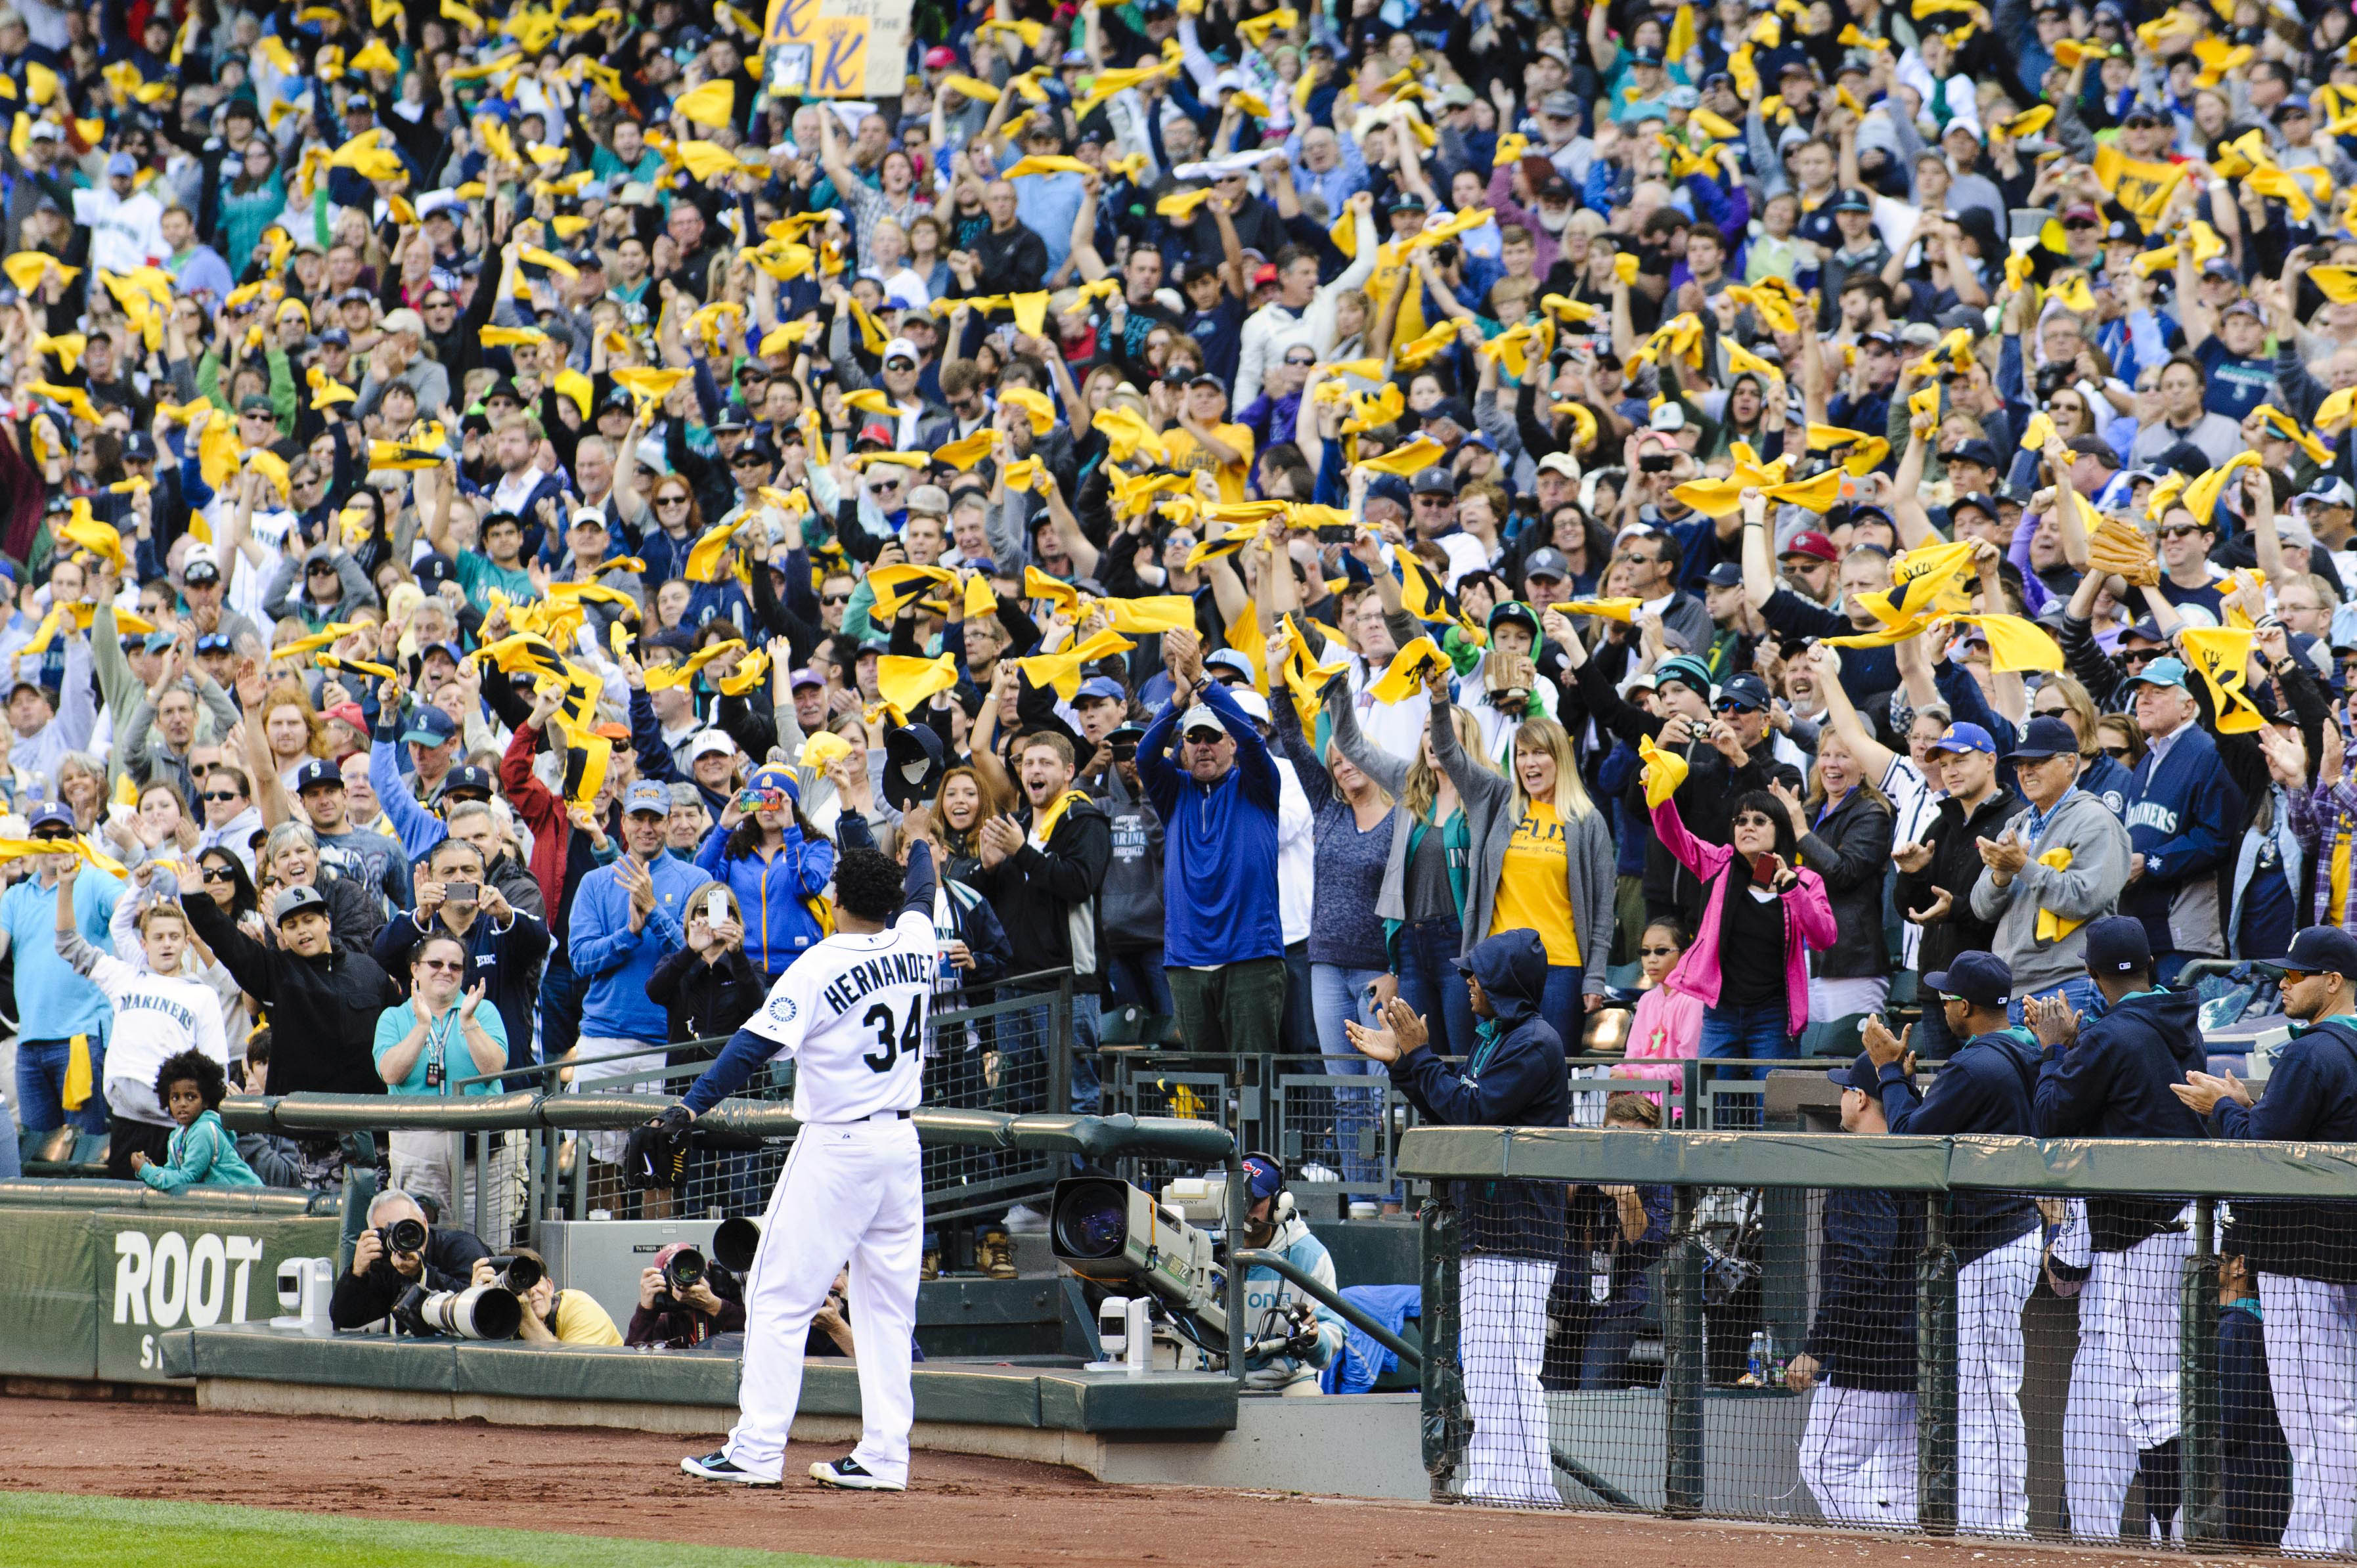 The Mariners missed the playoffs, but they're still celebrating…